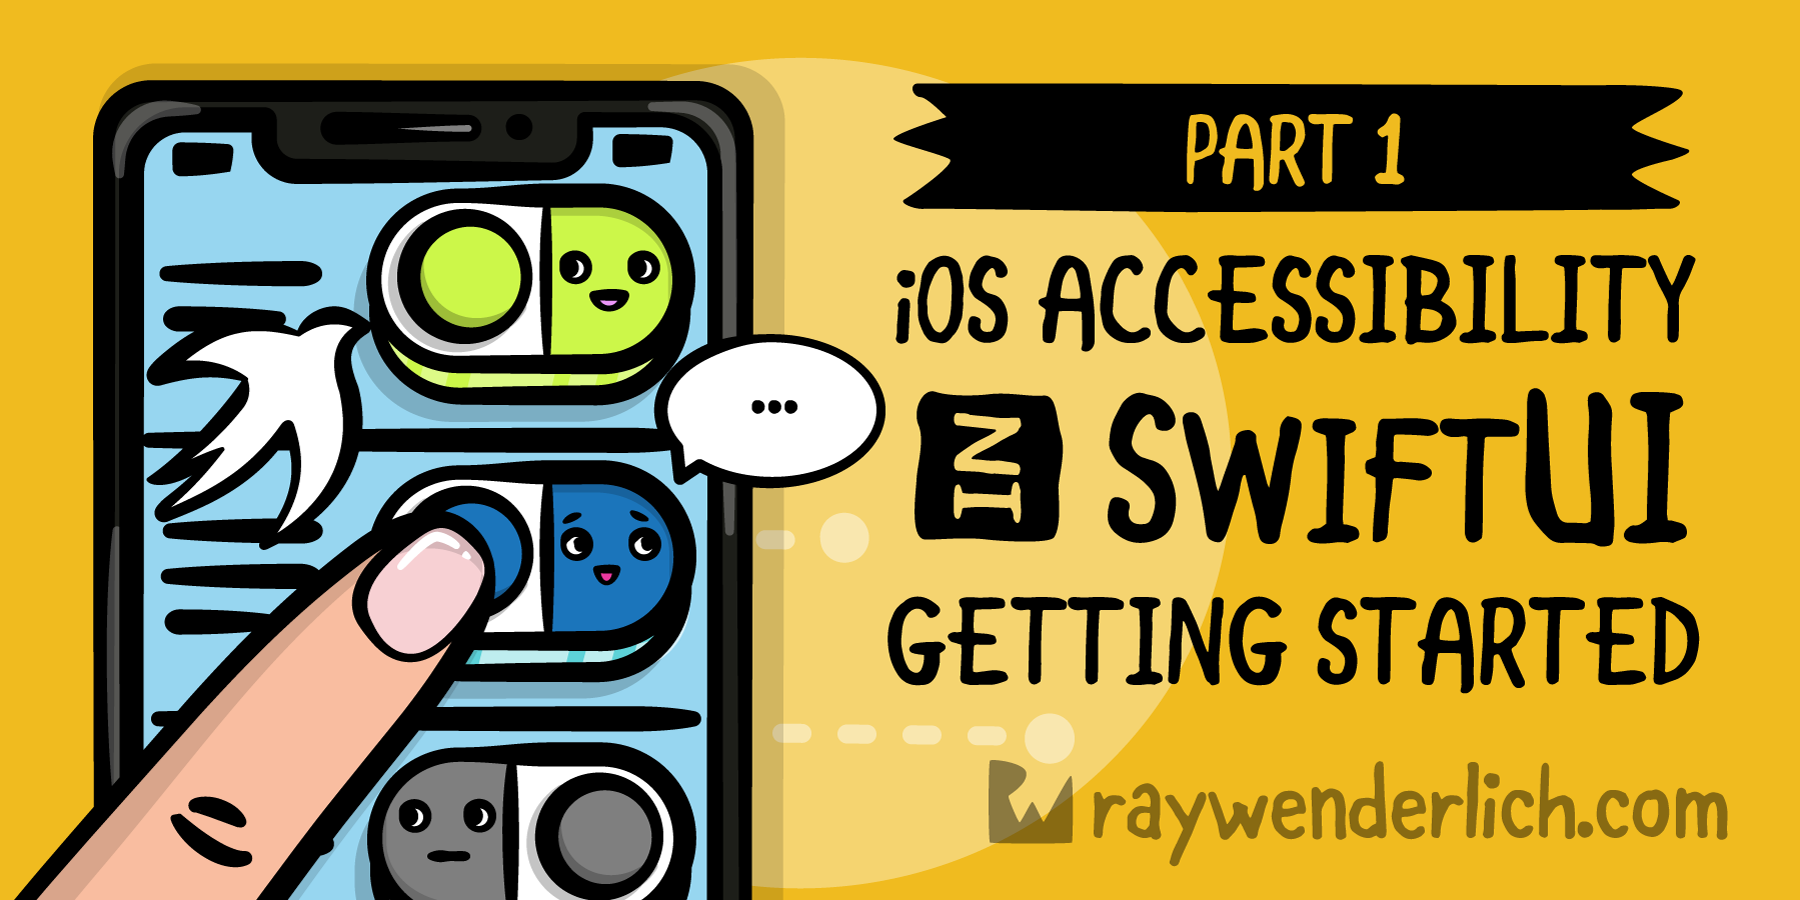 iOS Accessibility in SwiftUI Tutorial Part 1: Getting Started [FREE]